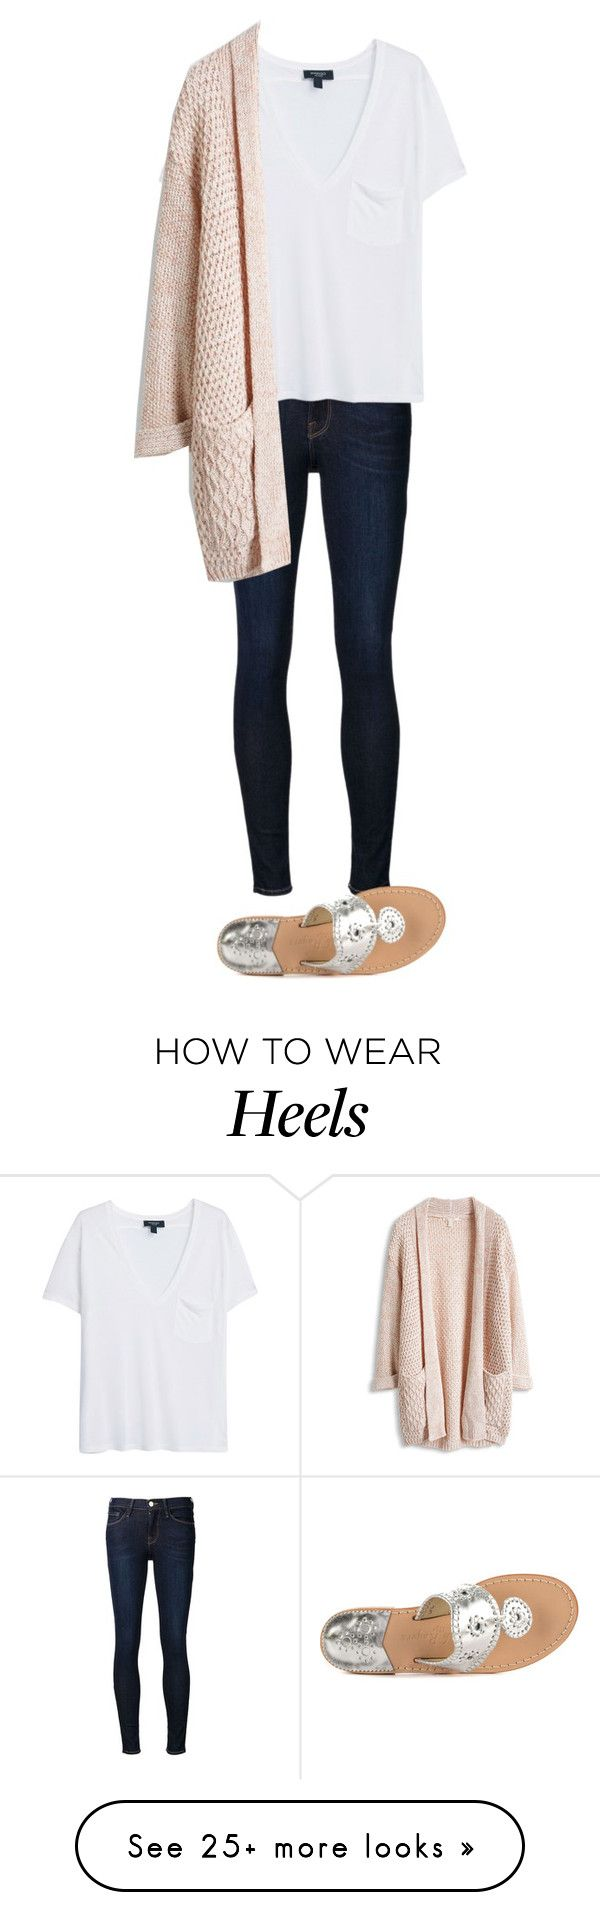 "✔️""ootd"" by smileyavenuegirl on Polyvore featuring Frame Denim, MANGO and Jack Rogers"